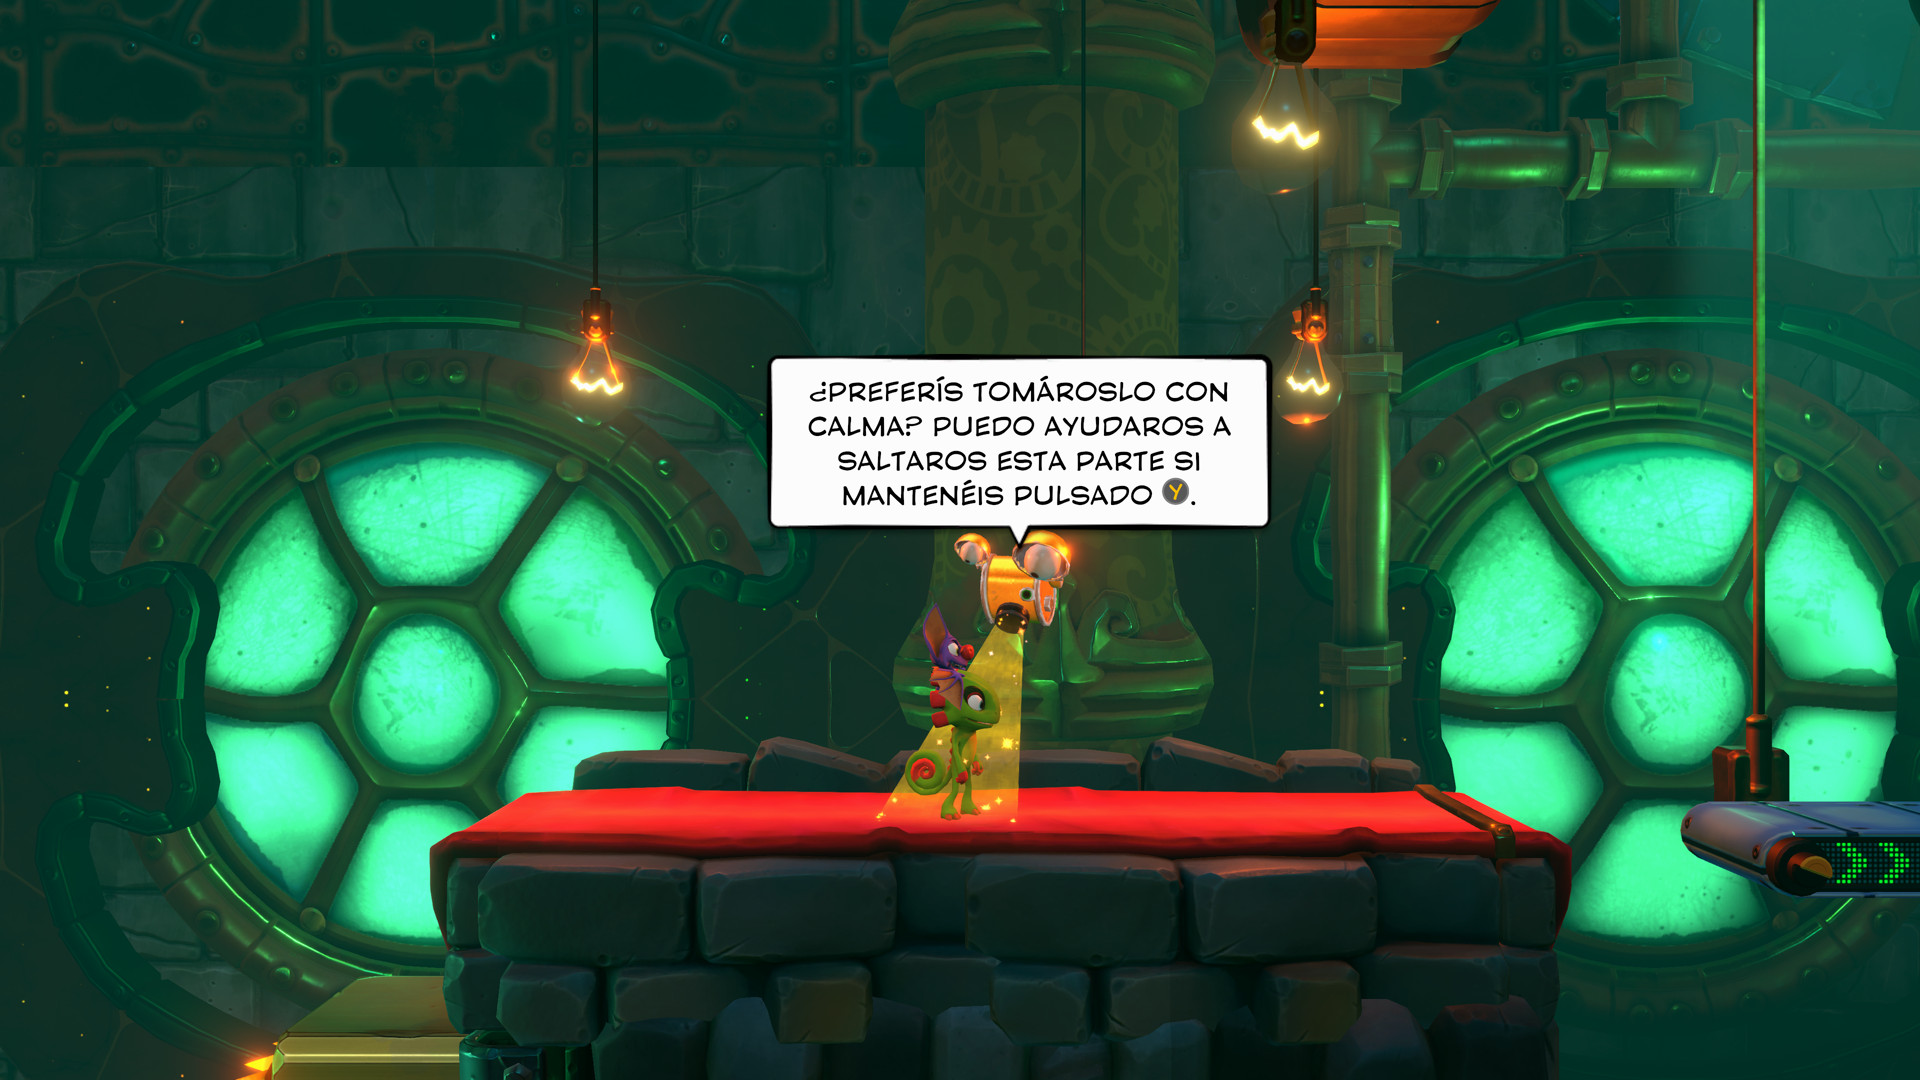 b90yxf3z76_Yooka-Laylee and the Impossible Lair 2019-11-18 23-21-39.jpg